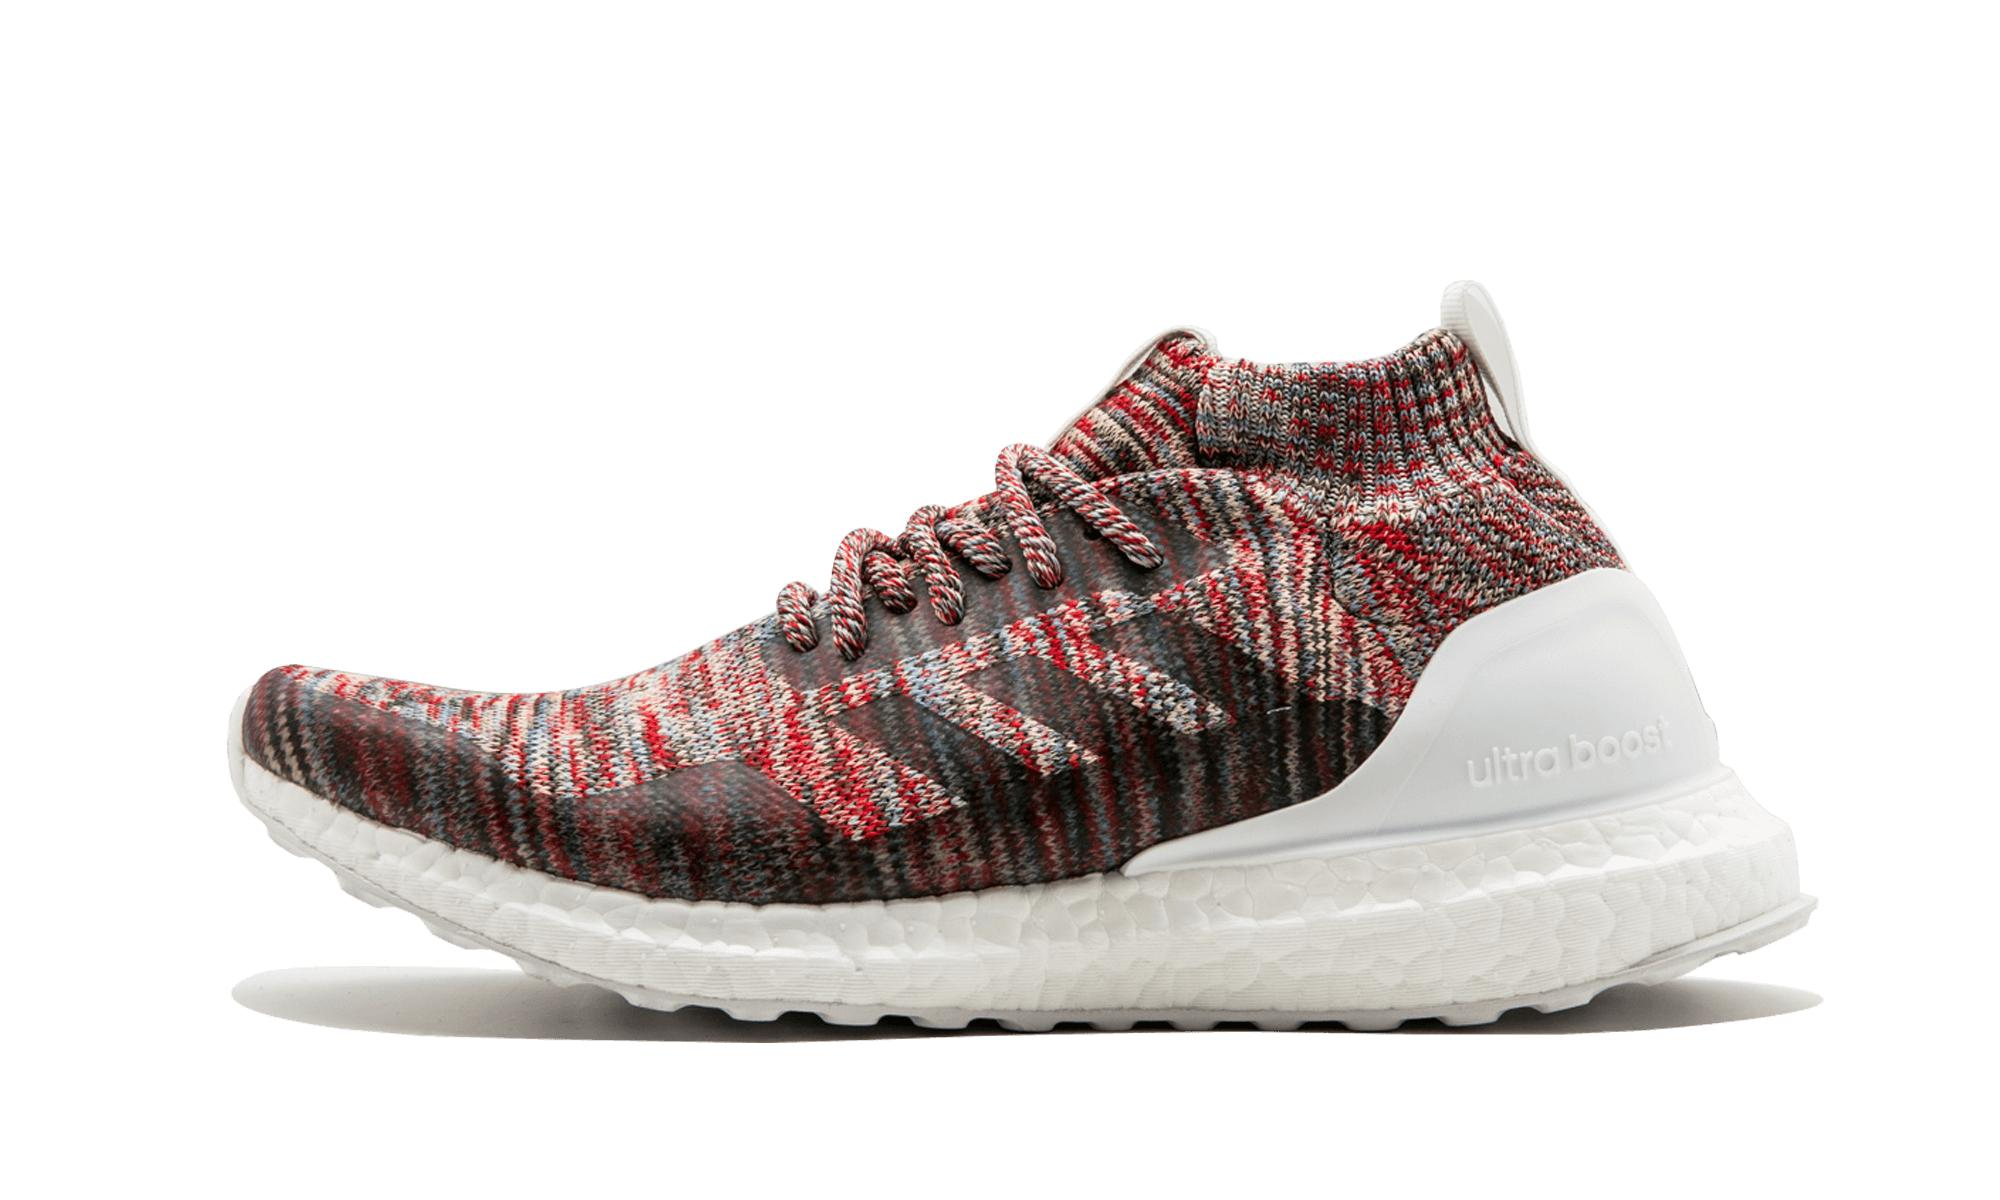 33b970822 Lyst - adidas Ultra Boost Mid Kith for Men